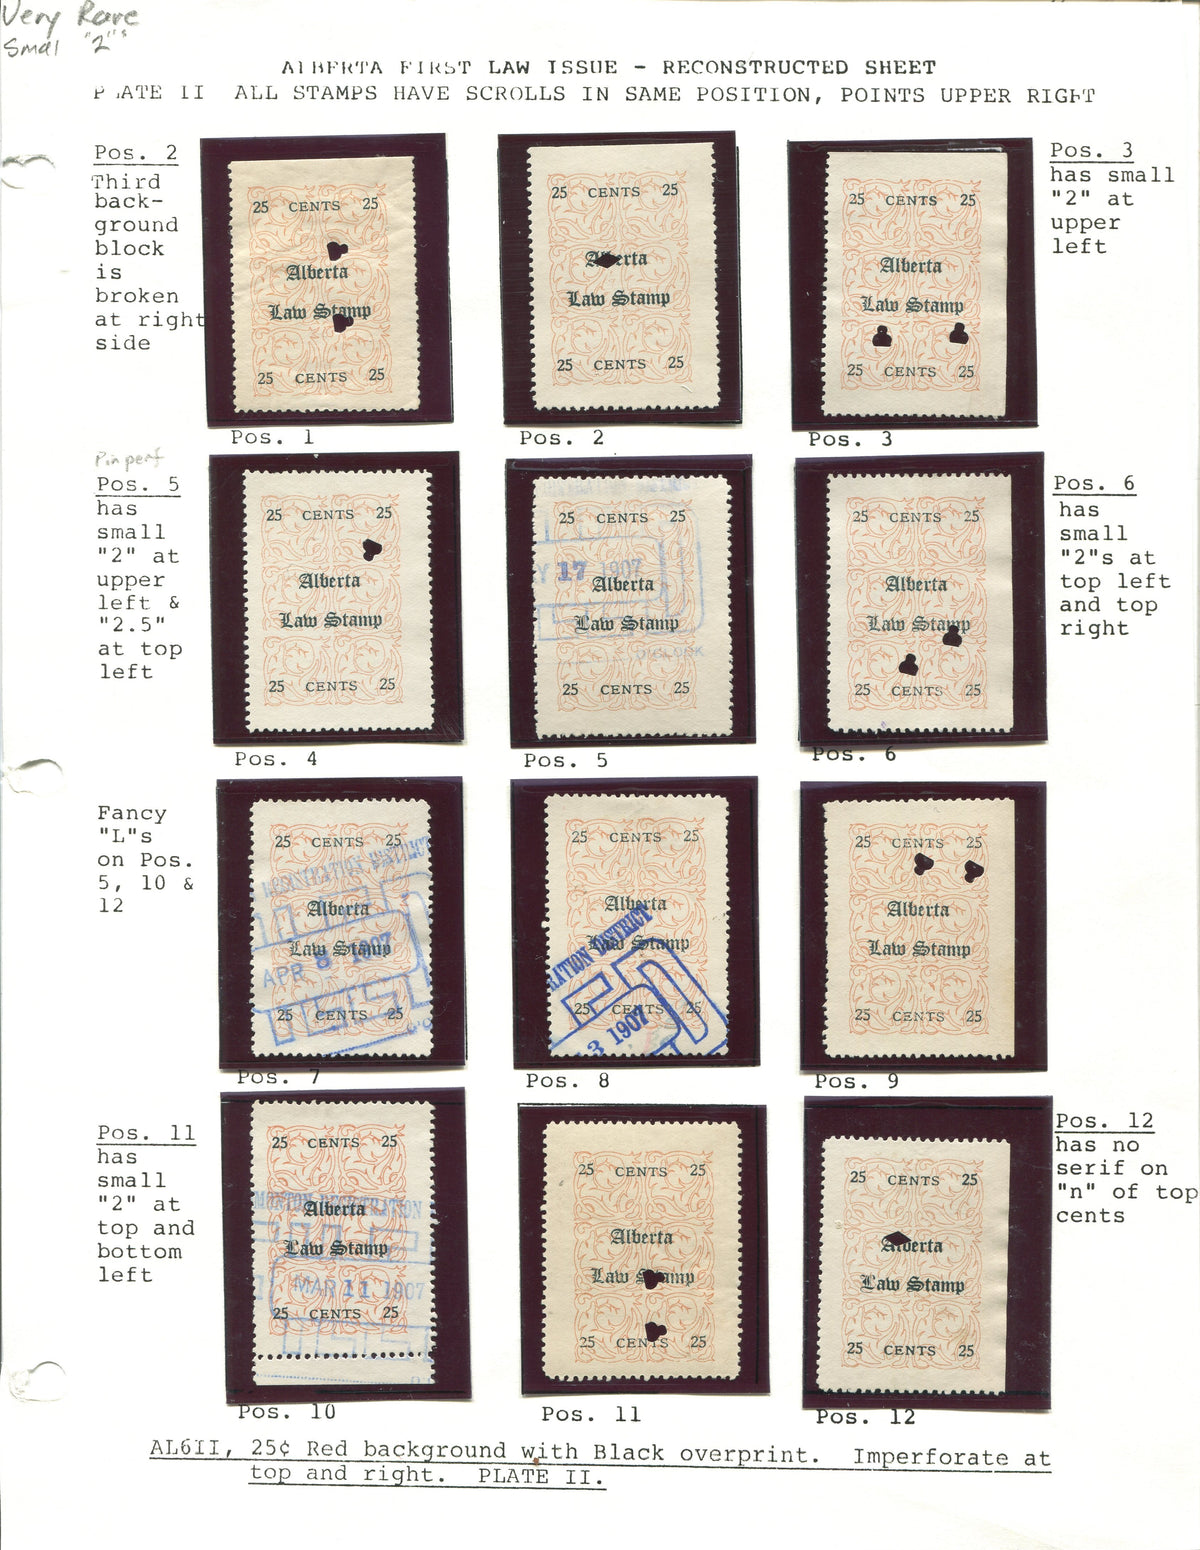 0006AL1709 - AL6 - Used Reconstructed Sheet - Deveney Stamps Ltd. Canadian Stamps